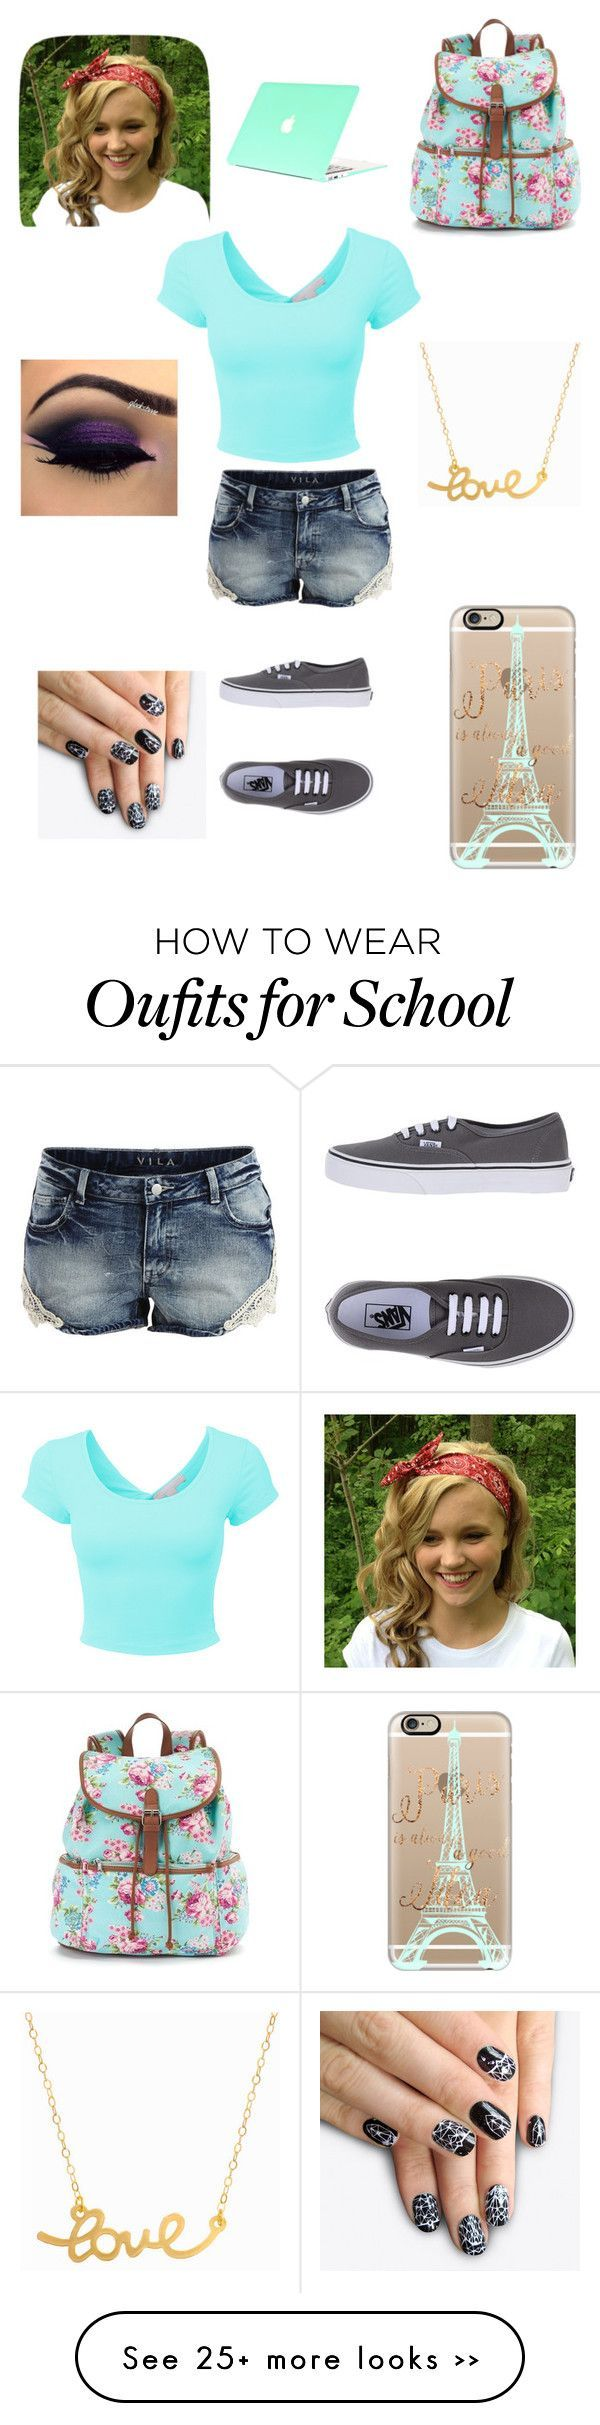 school outfit by jlayre on Polyvore